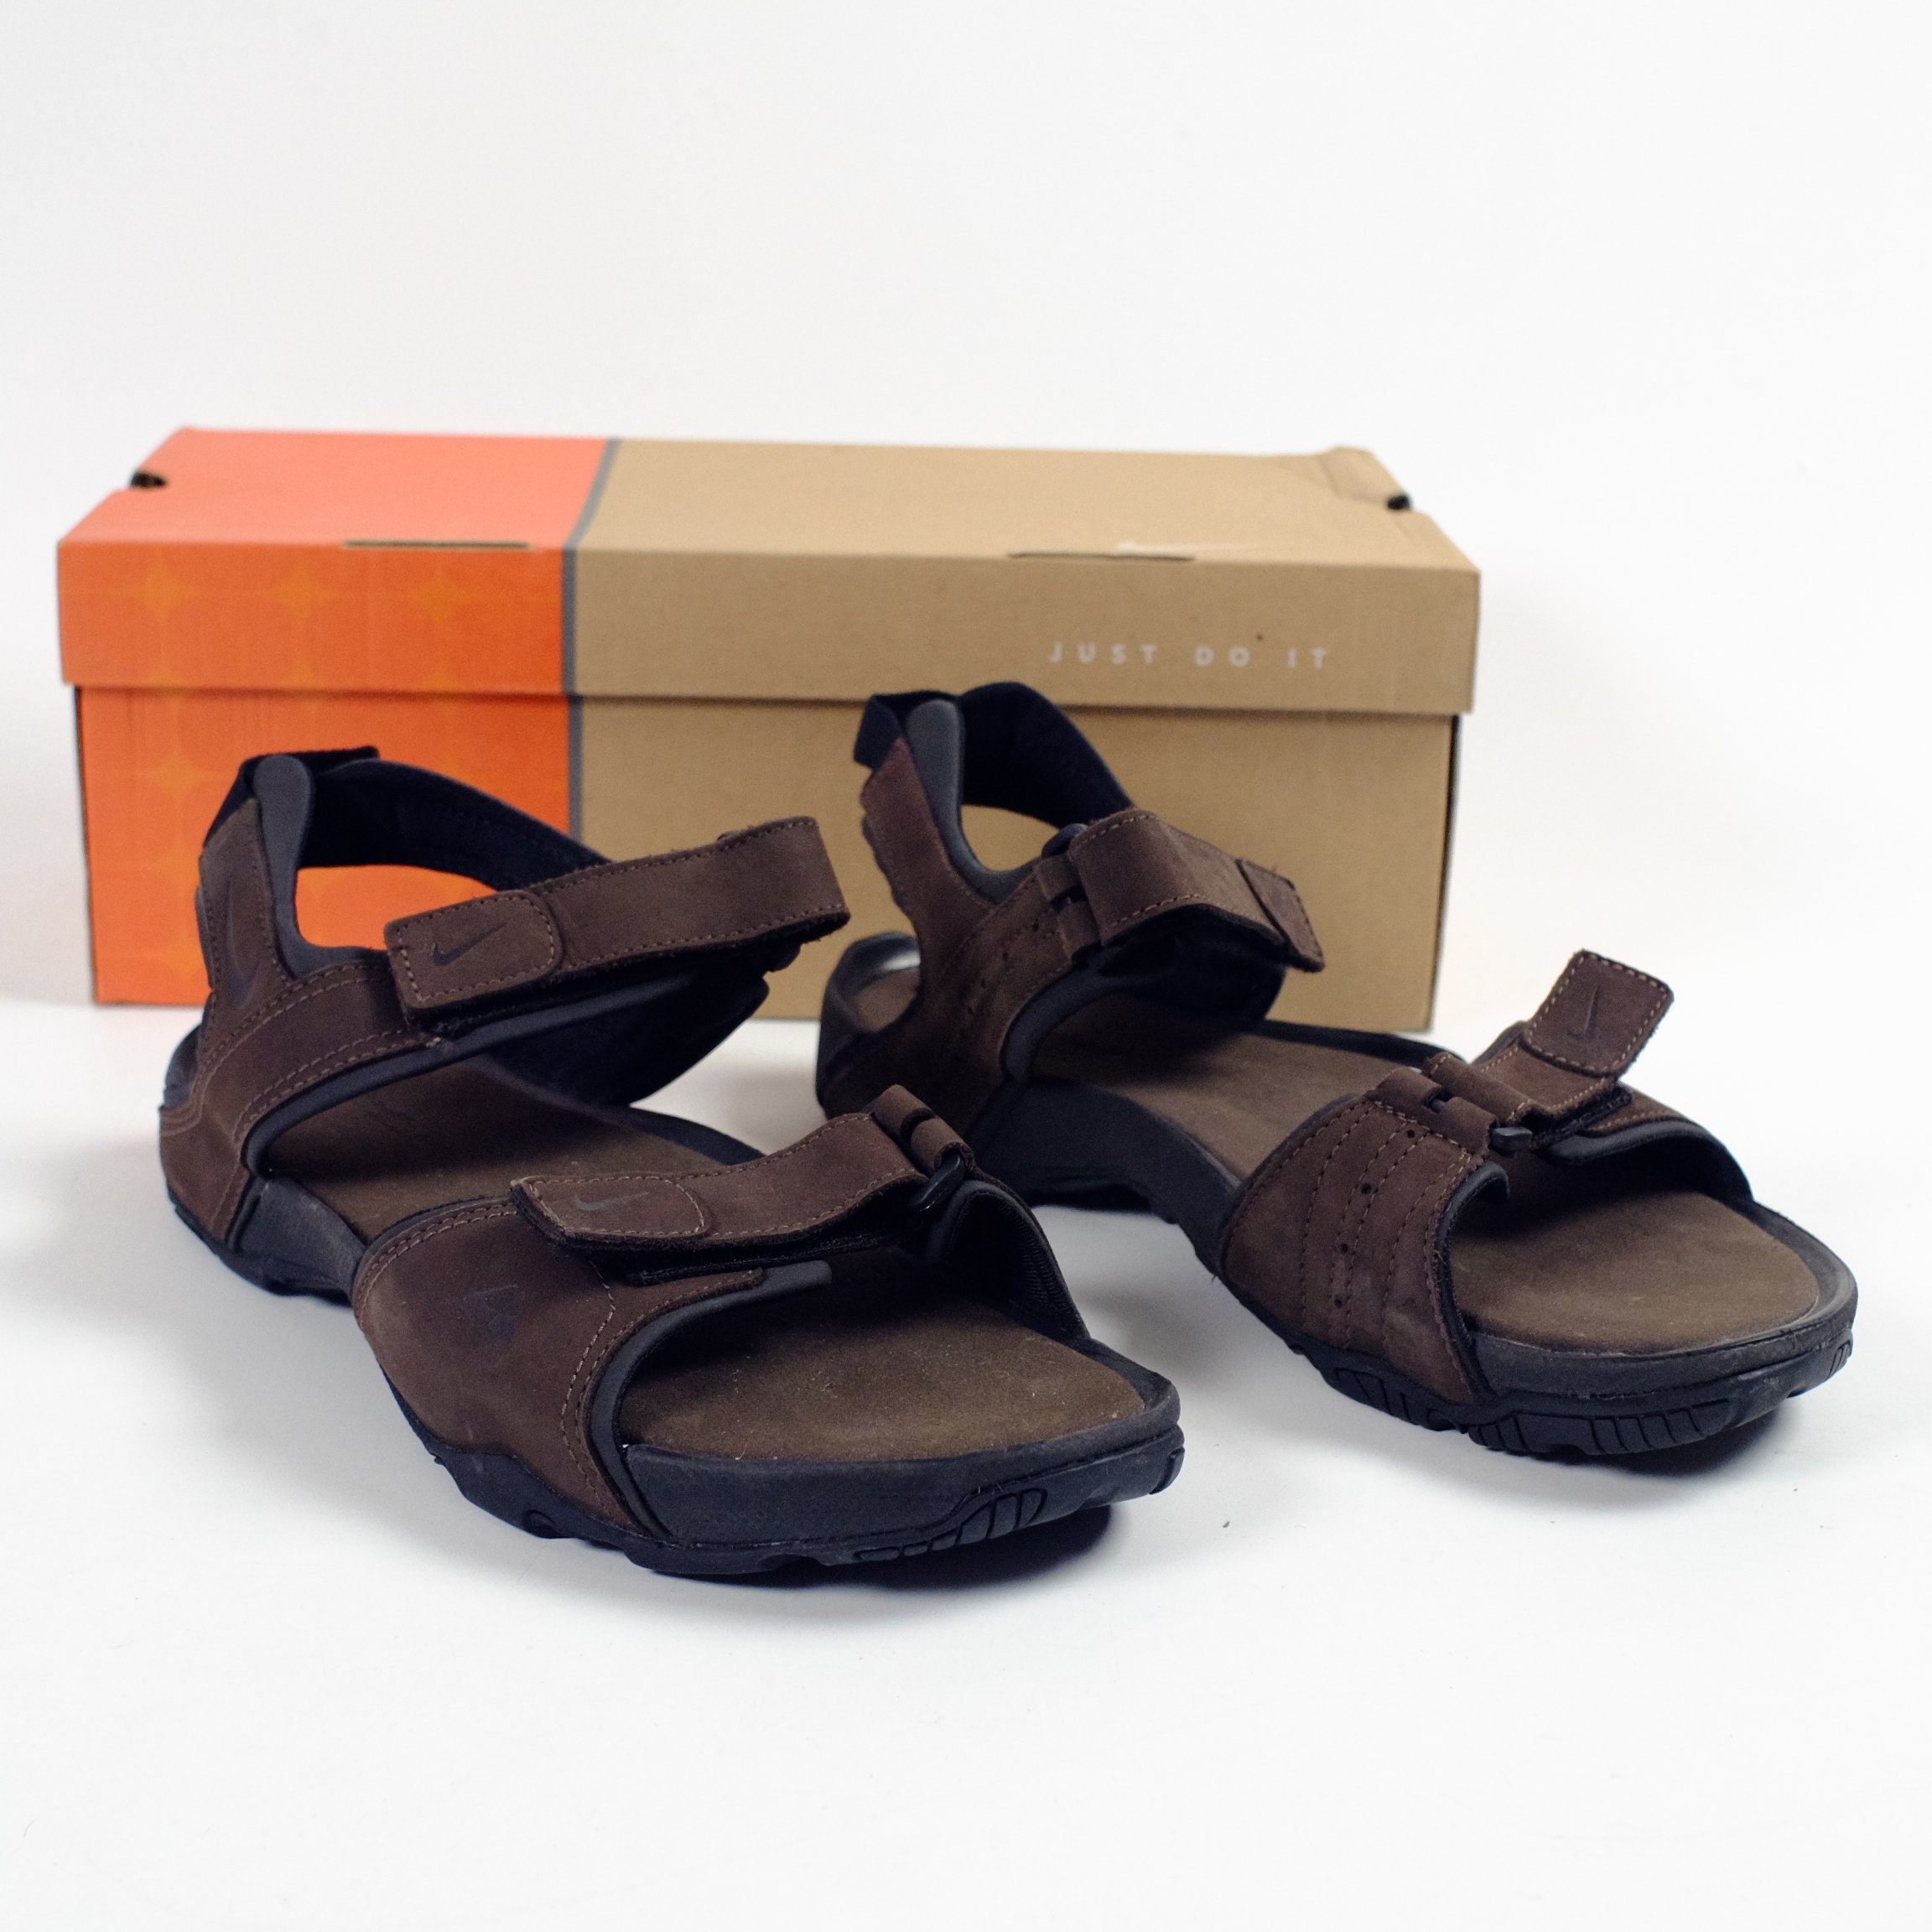 7b2de5d9a5ae Buy nike brown leather sandals